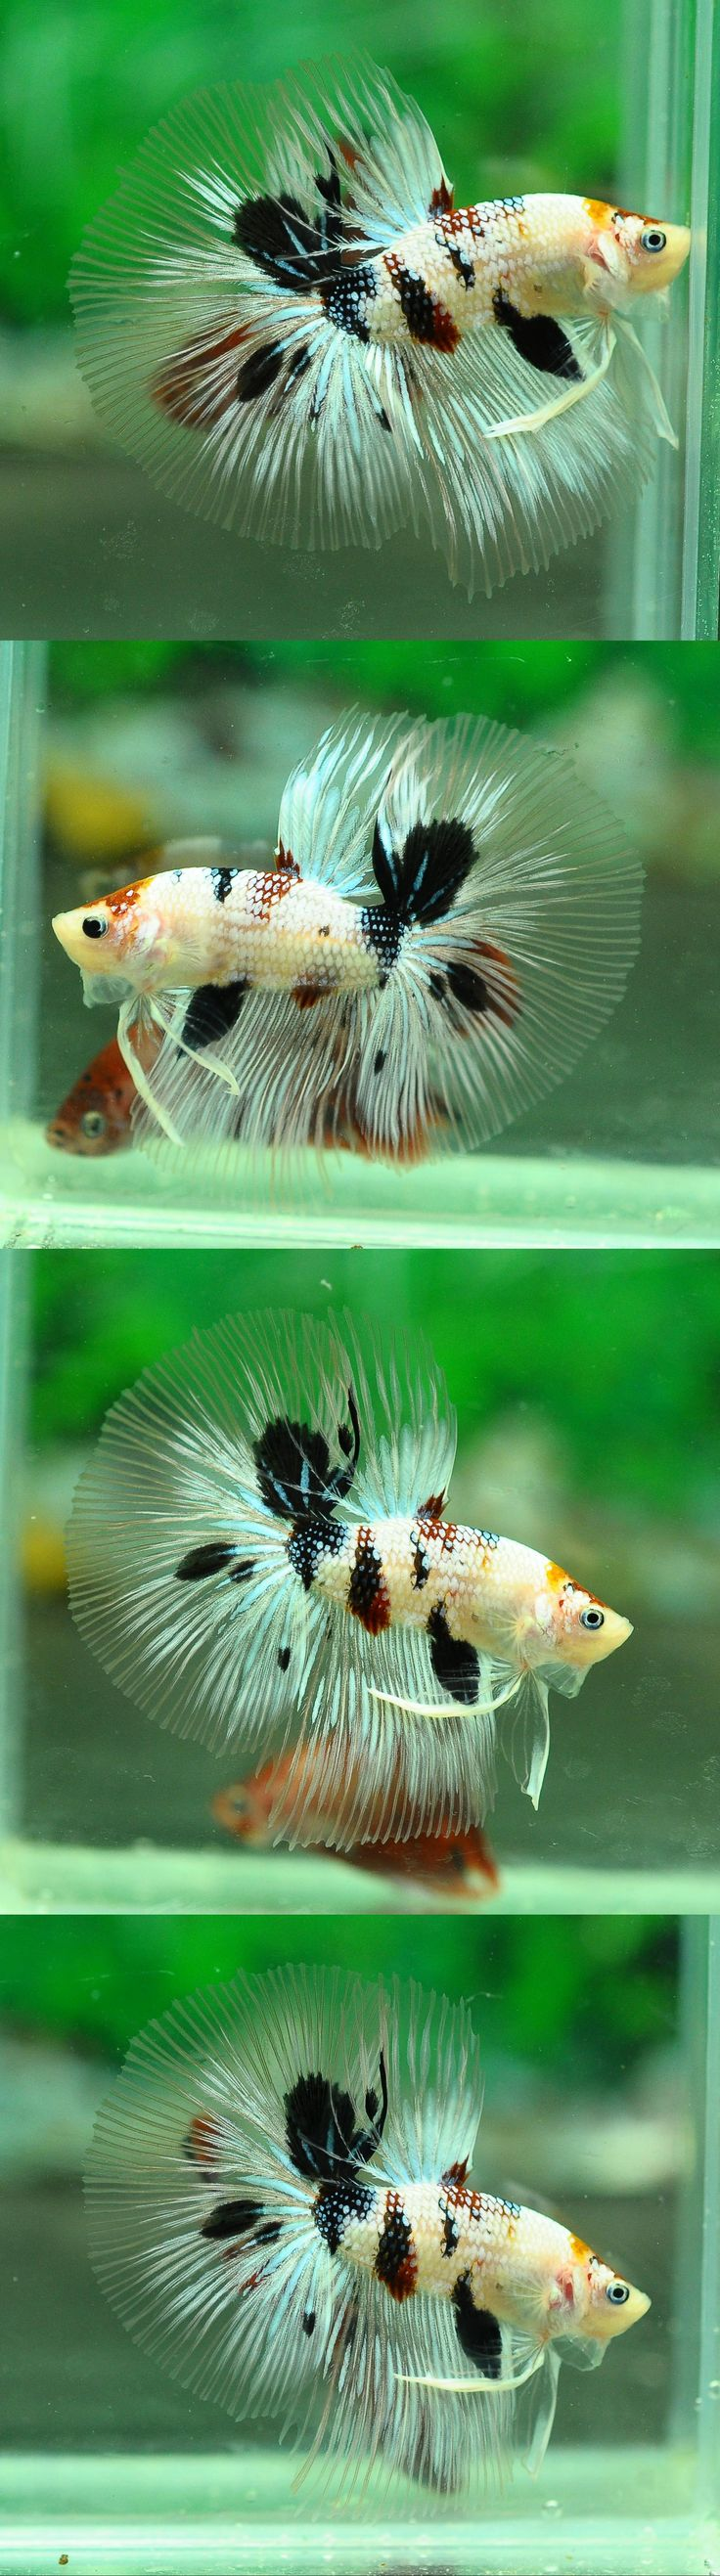 710 best Betta Fish images on Pinterest | Fish aquariums, Fish tanks ...